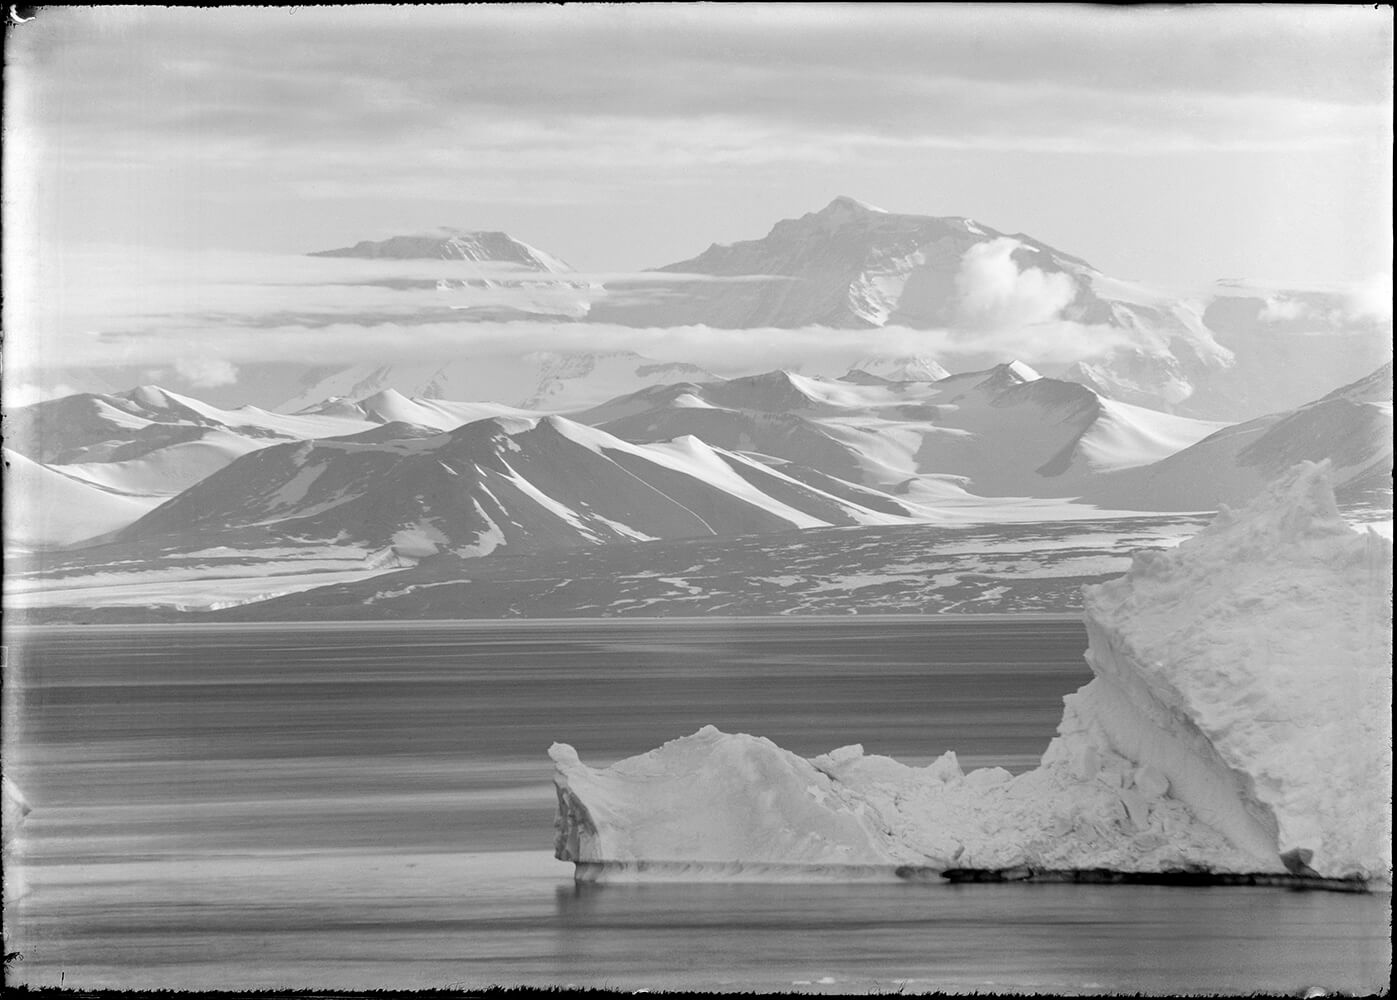 Terra Nova Expedition fine art photography